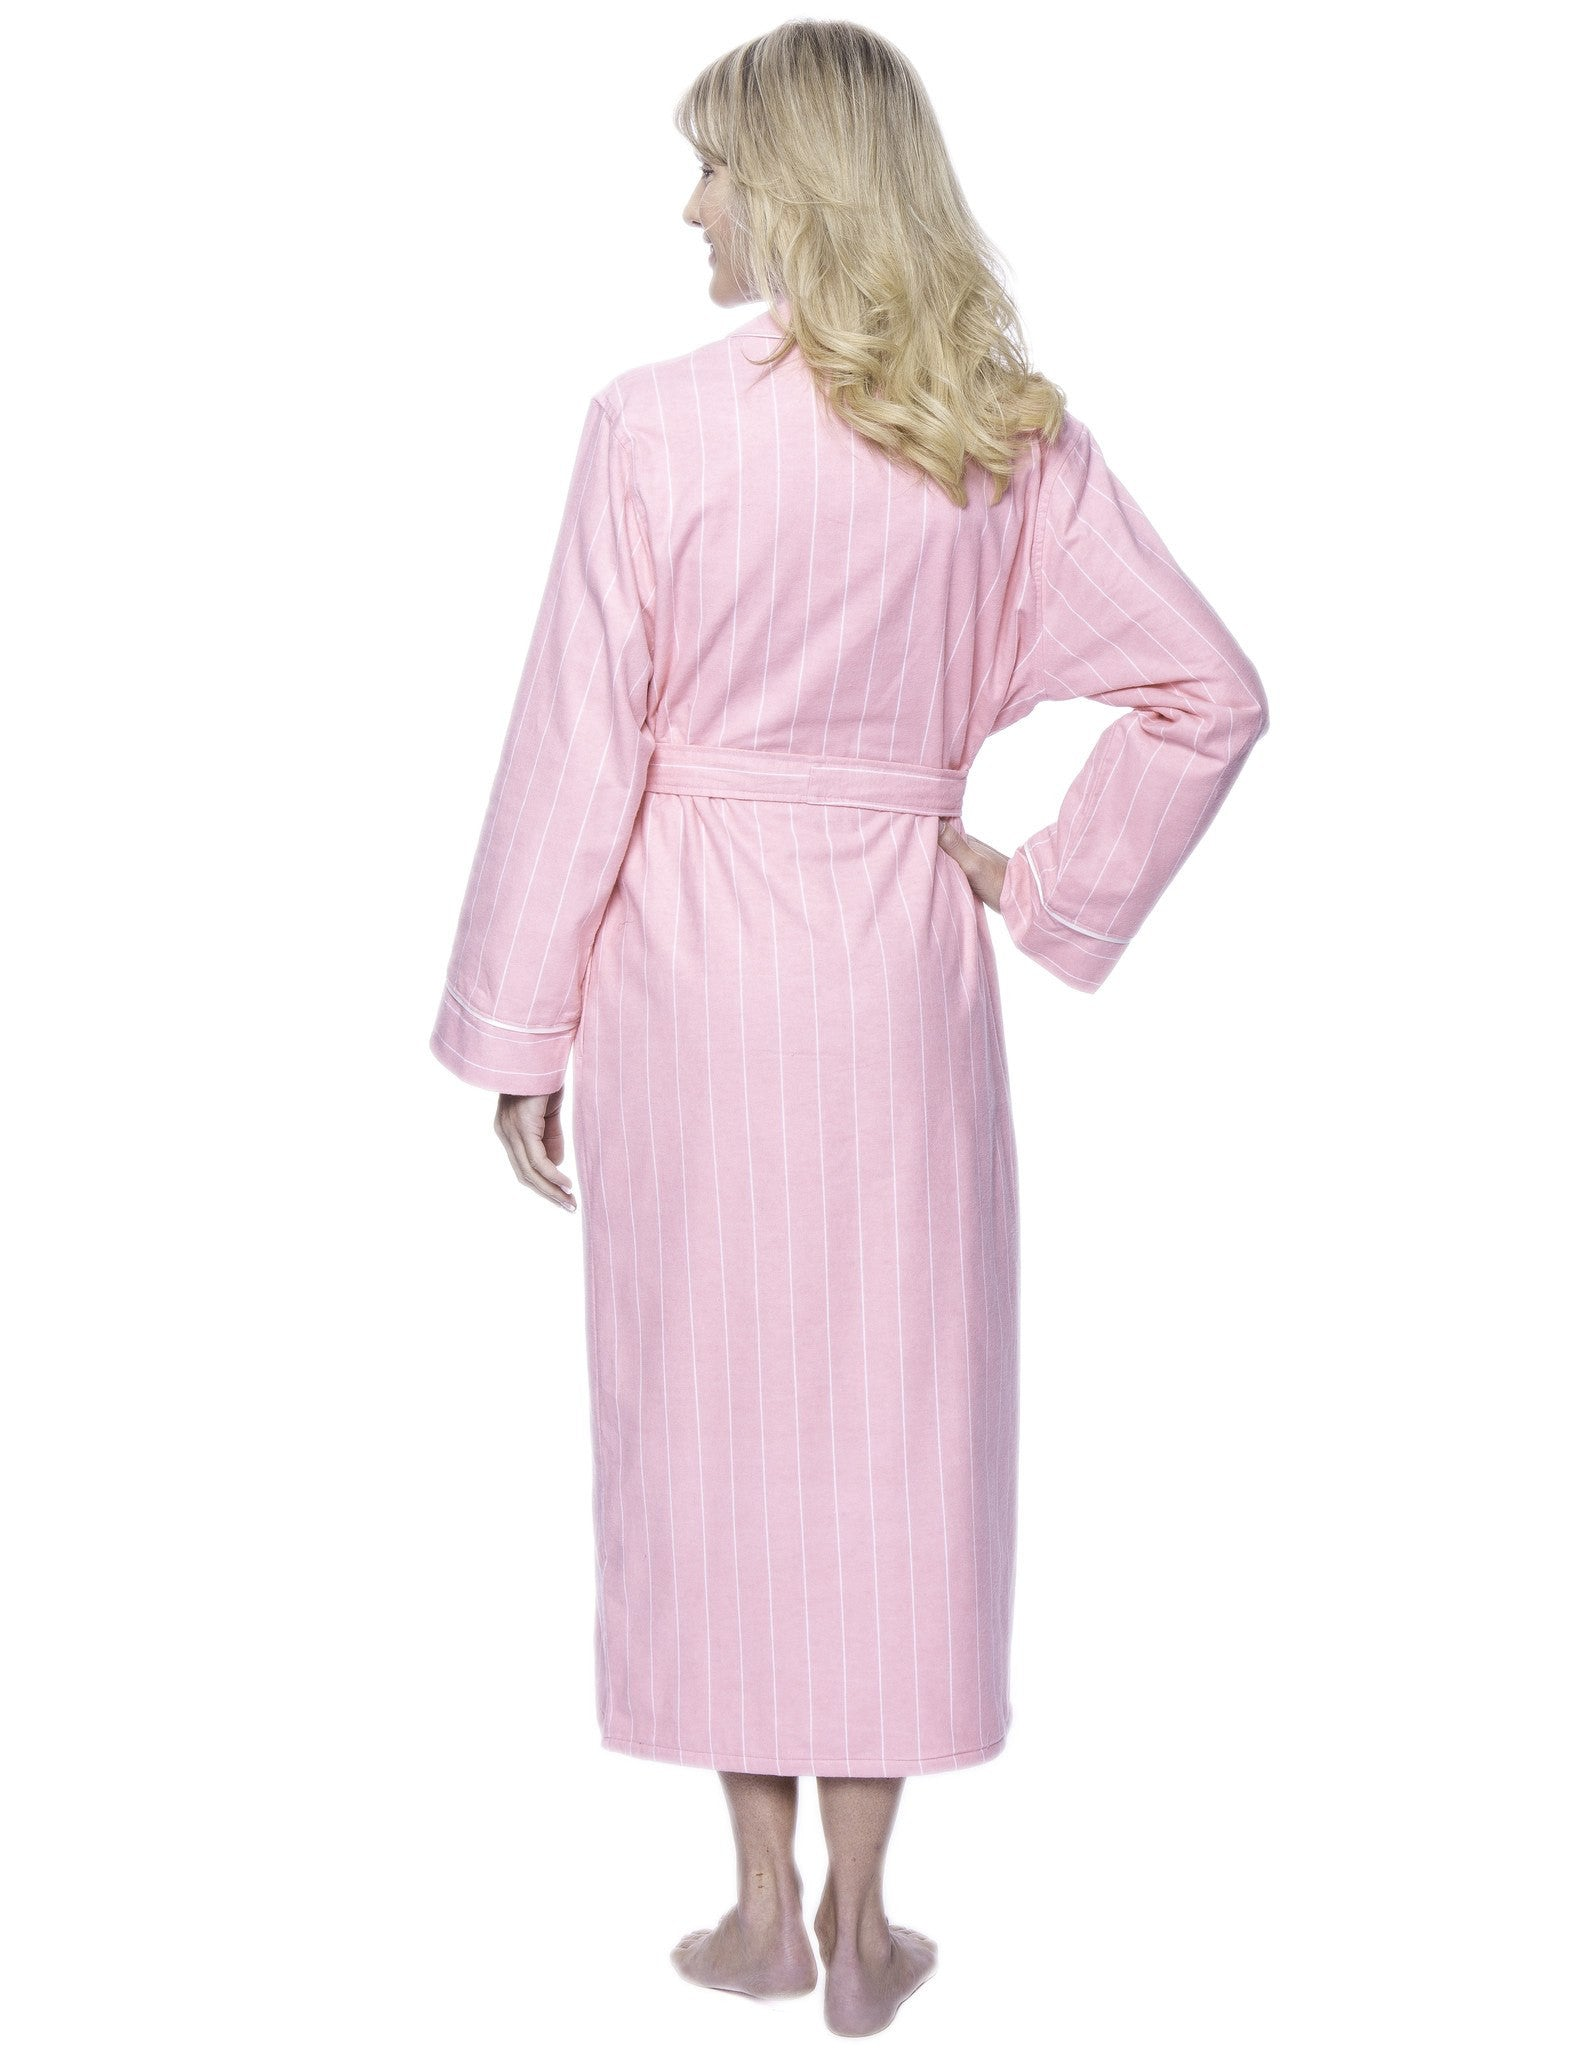 e7adcf58a5 Women s Premium Flannel Fleece Lined Robe - Stripes Pink